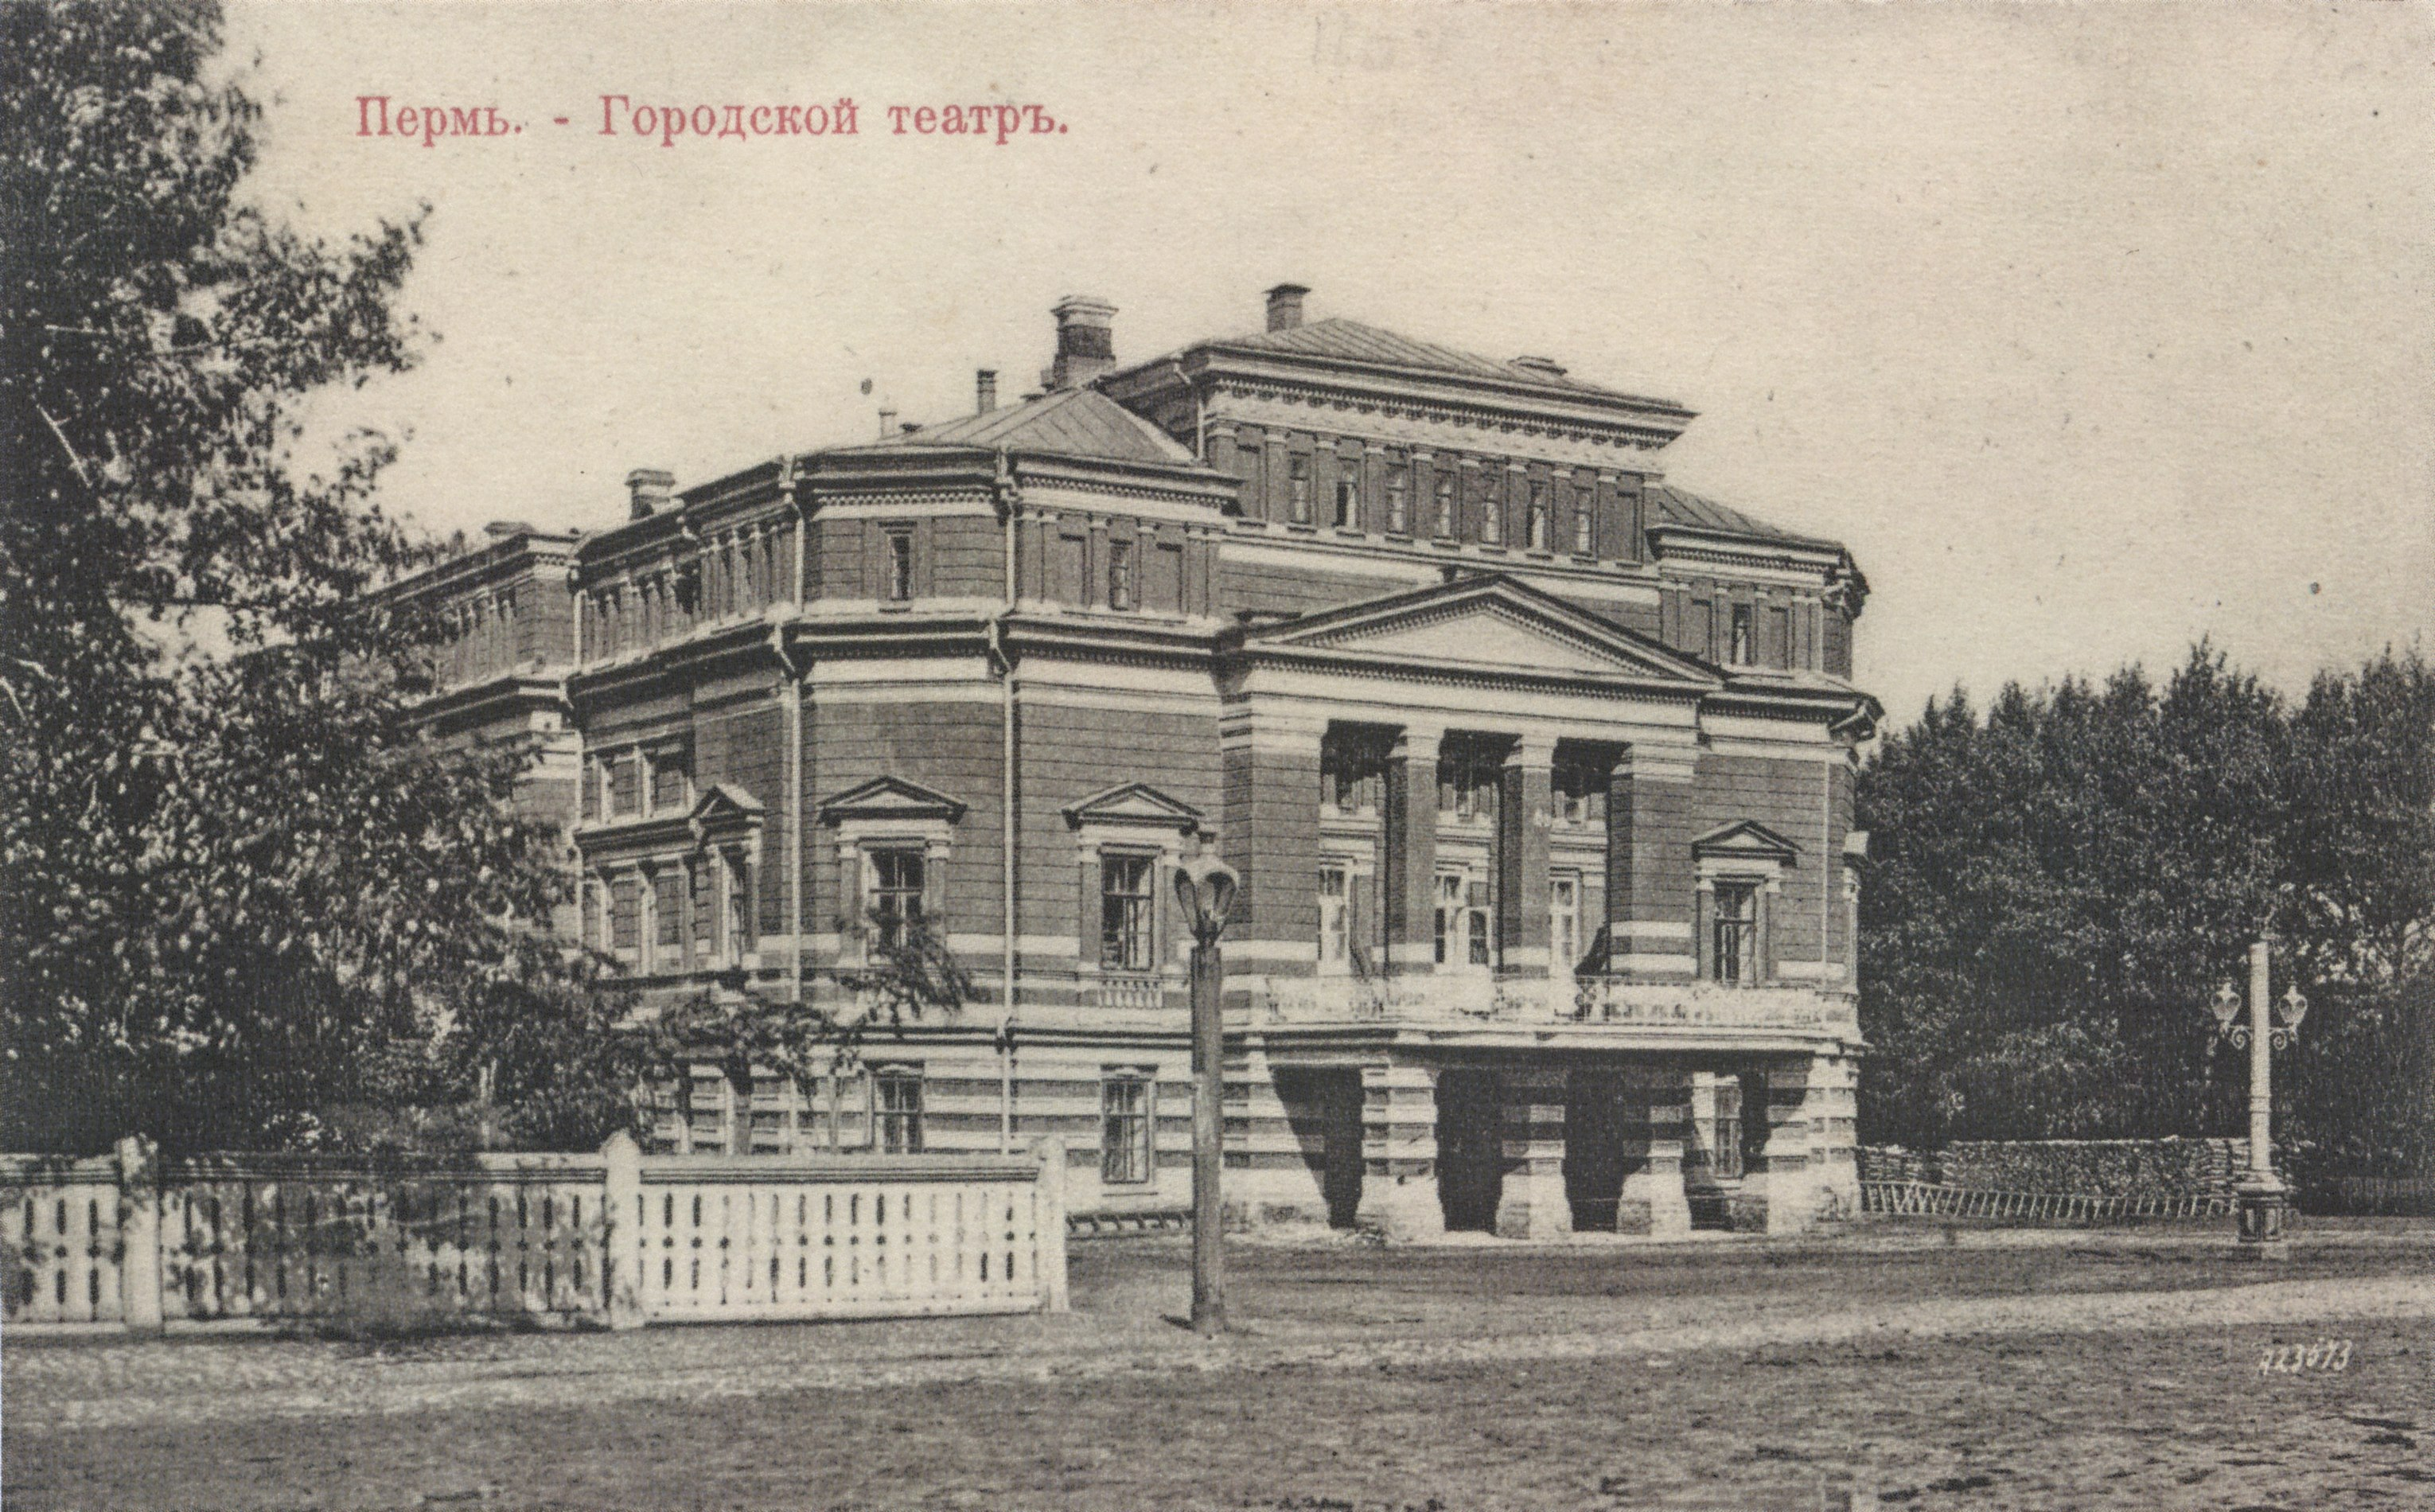 Omsk Academic Drama Theater: history, repertoire, troupe